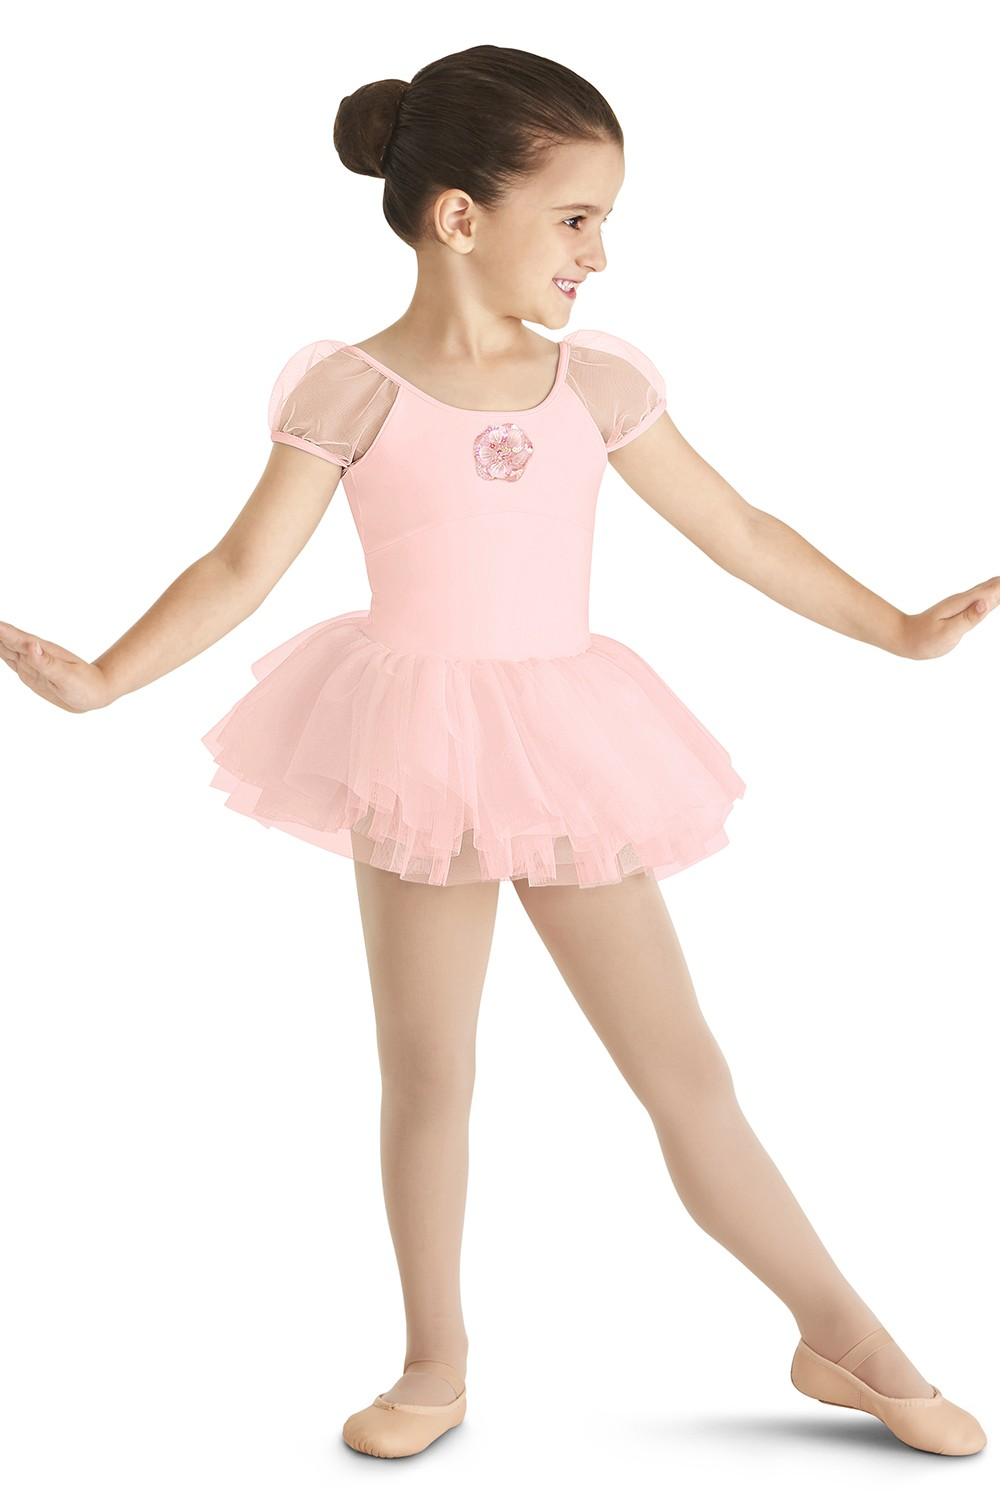 Justaucorps Tutu Children's Dance Leotards